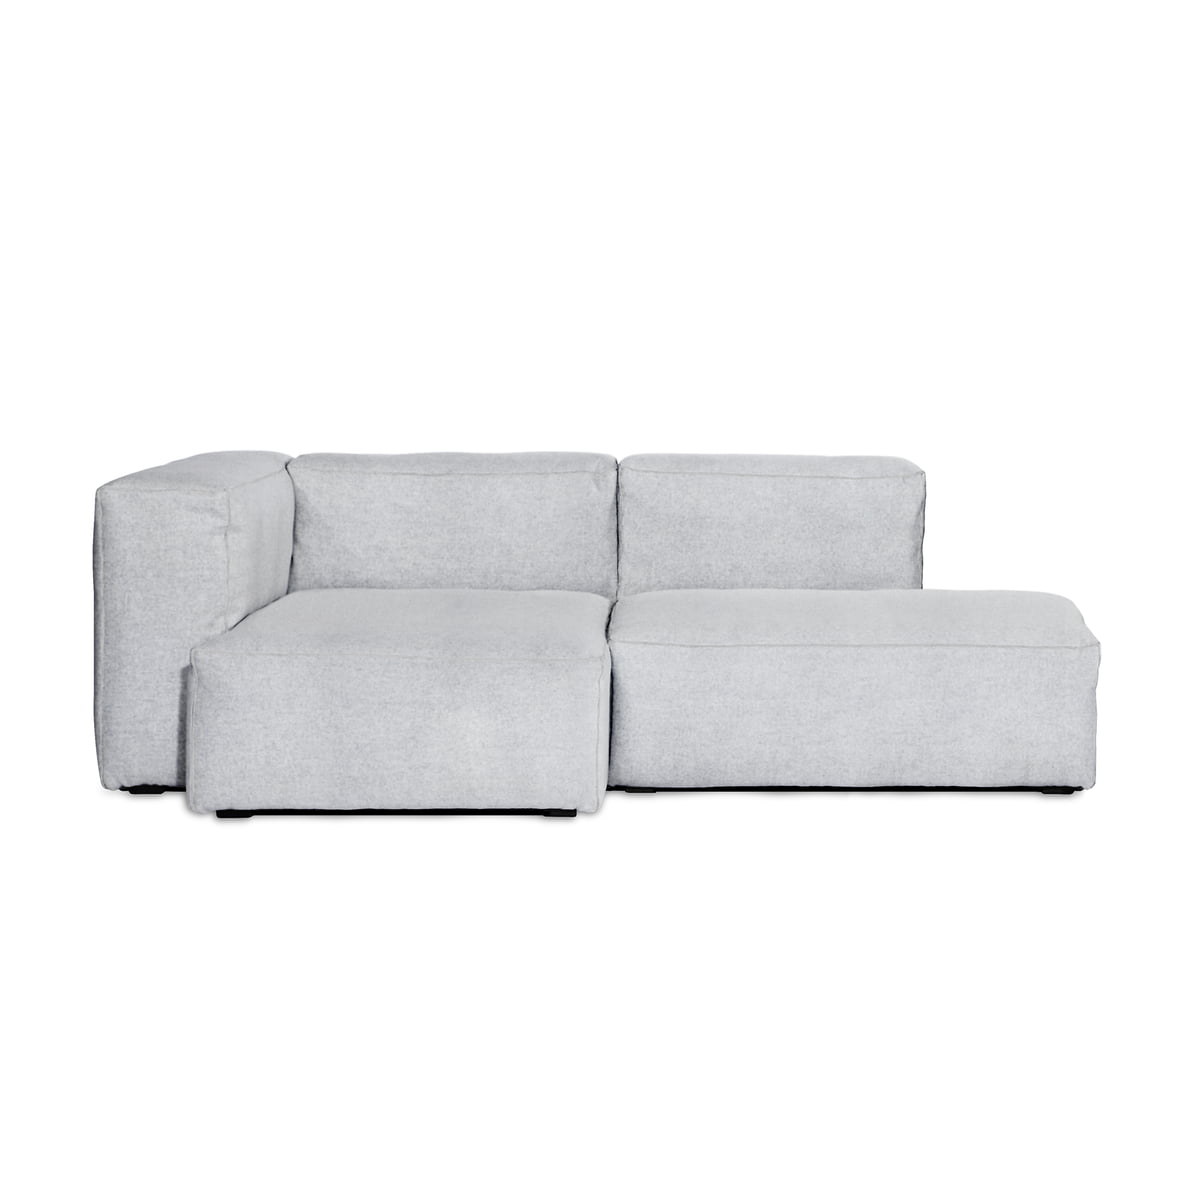 2 5 mags lounge sofa by hay for Sofa 1 5 sitzer